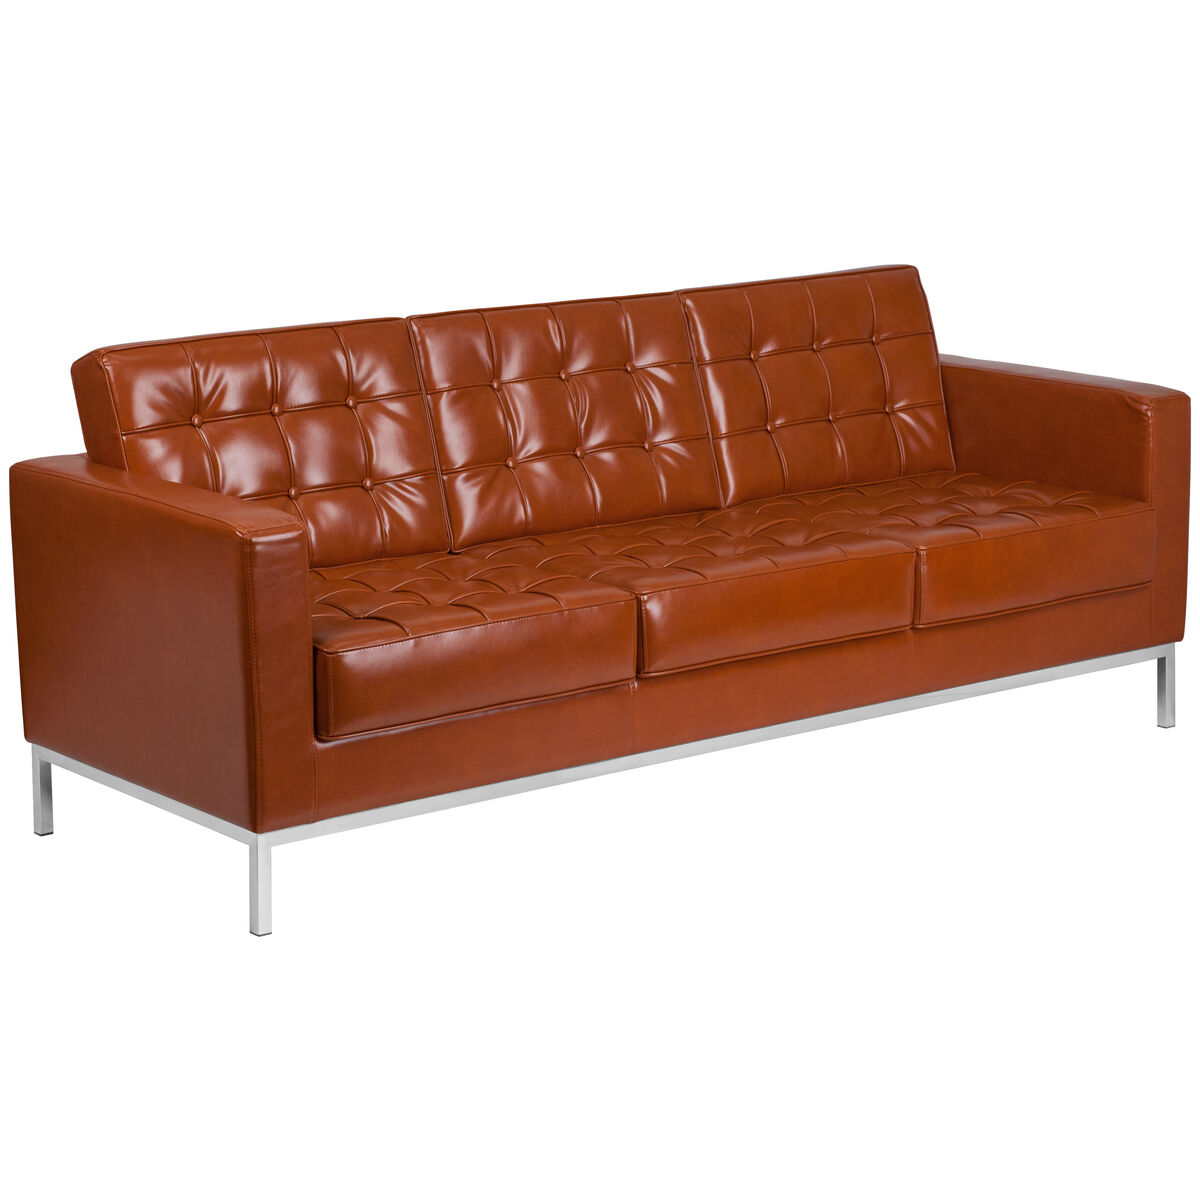 Flash furniture zb lacey 831 2 sofa cog gg for Furniture sites